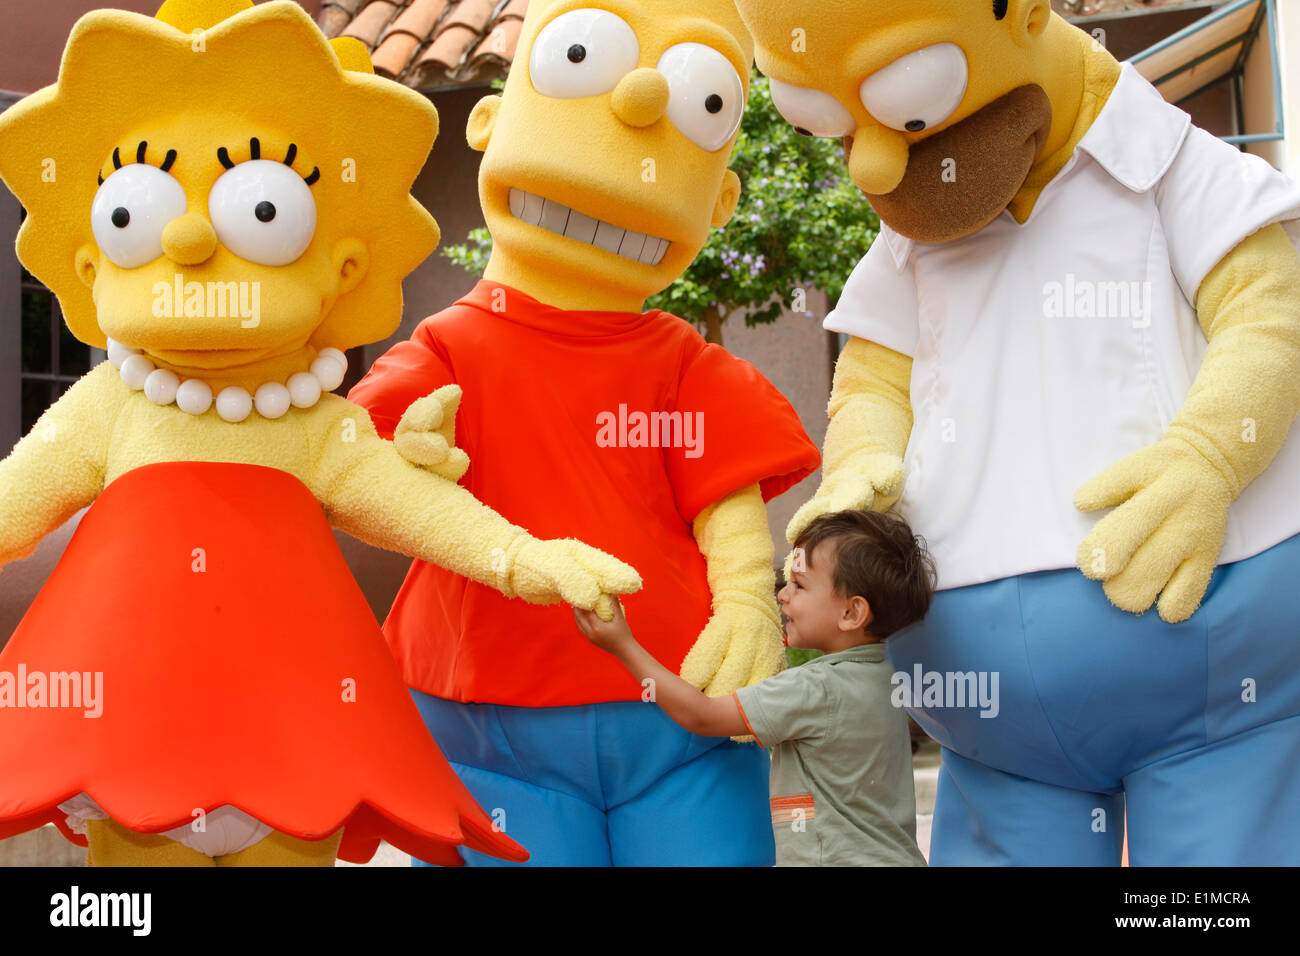 Boy with the Simpsons at Universal Orlando - Stock Image